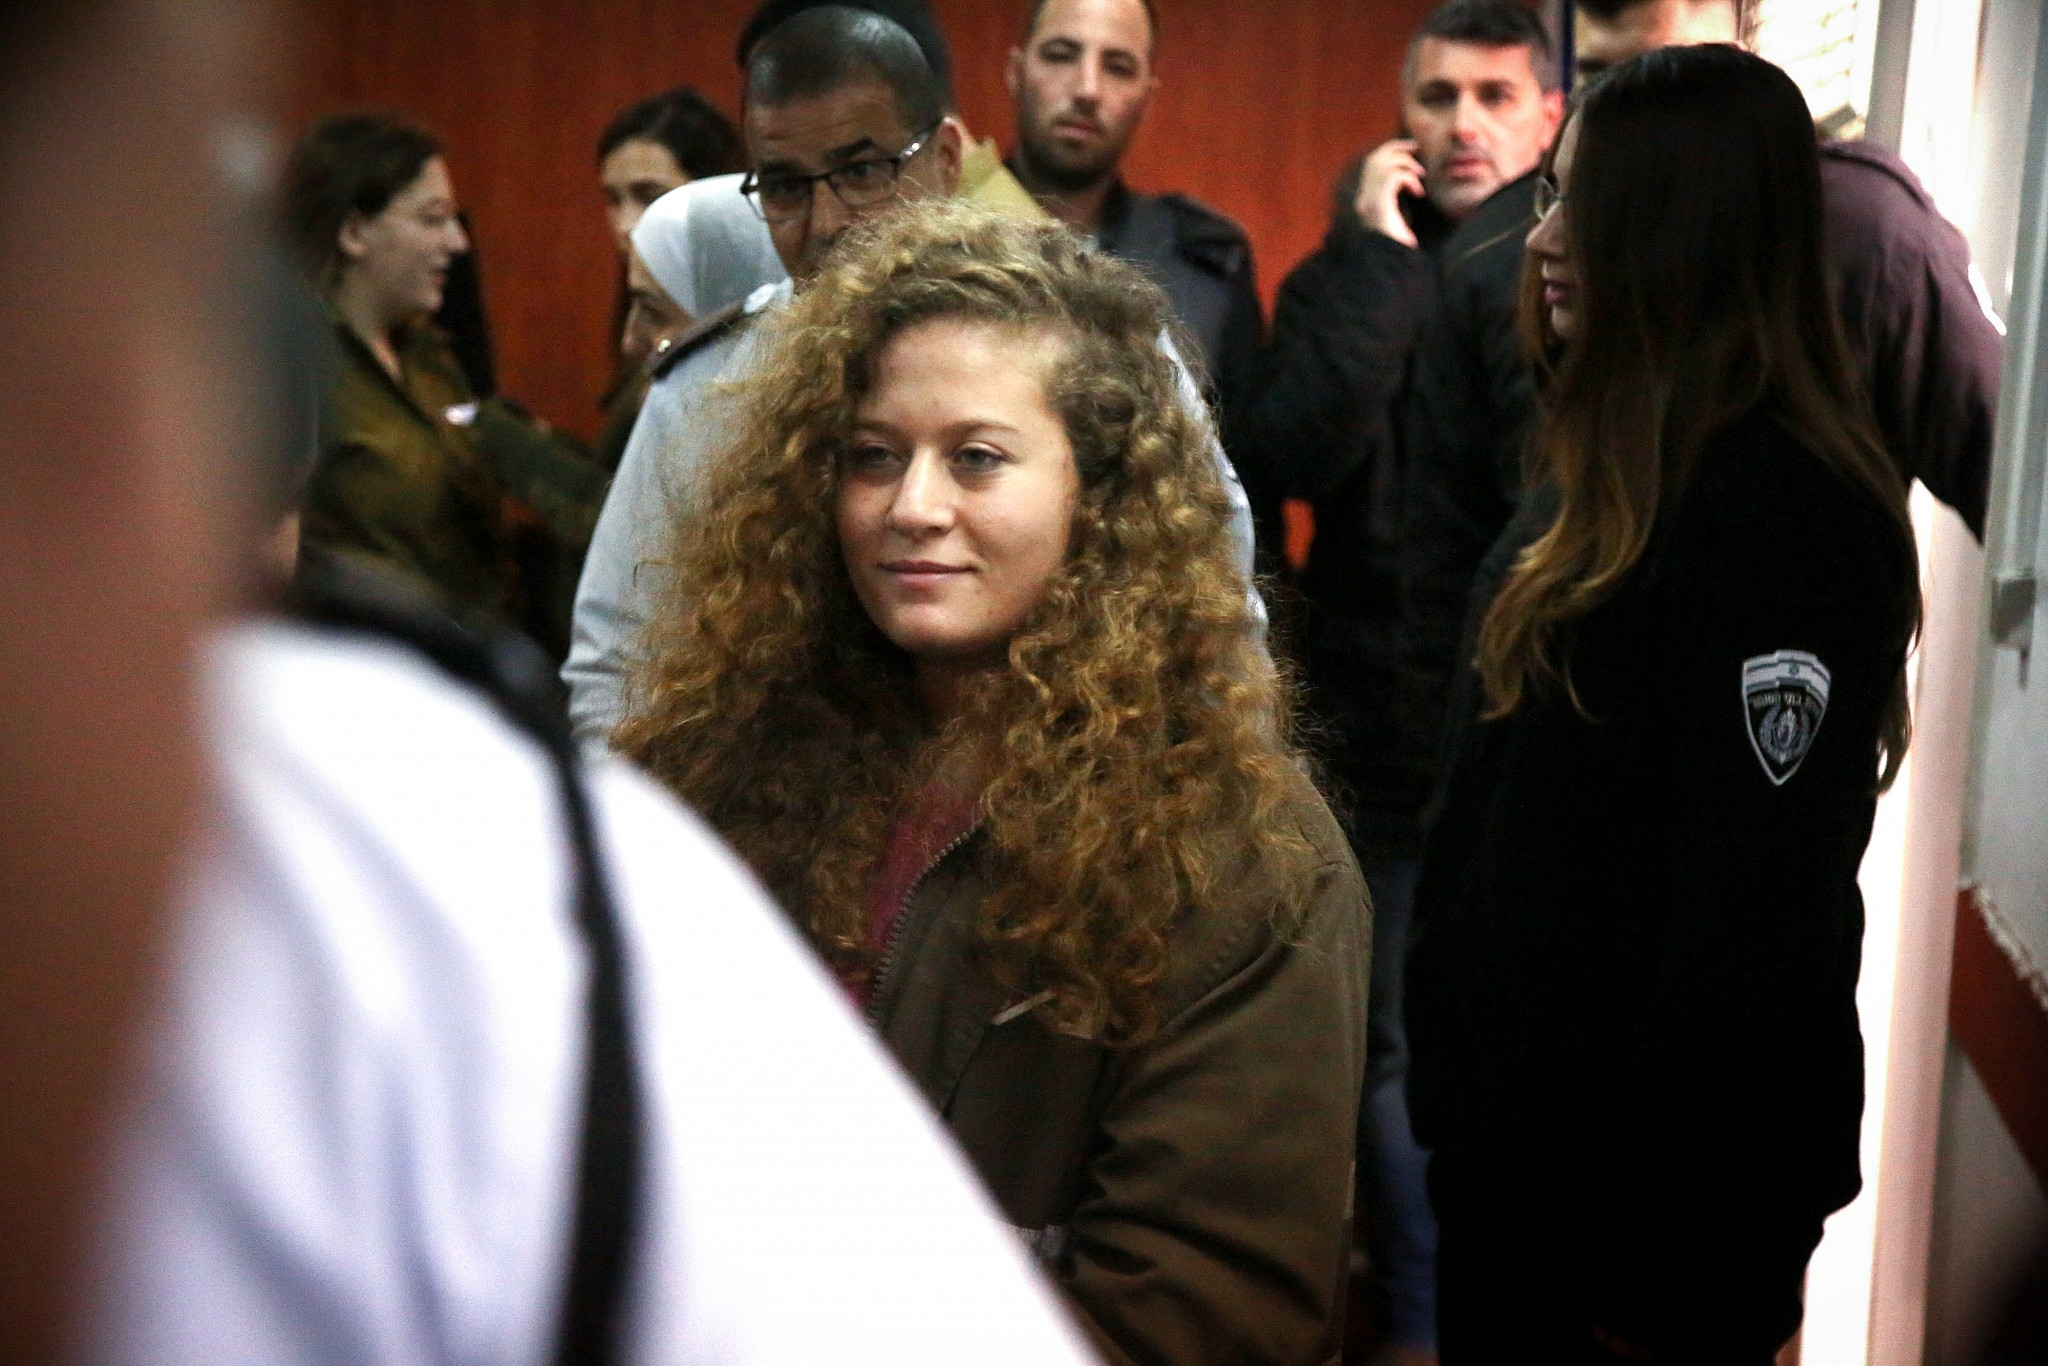 Palestinian Ahed Tamimi agrees 8 months in Israeli jail after plea deal